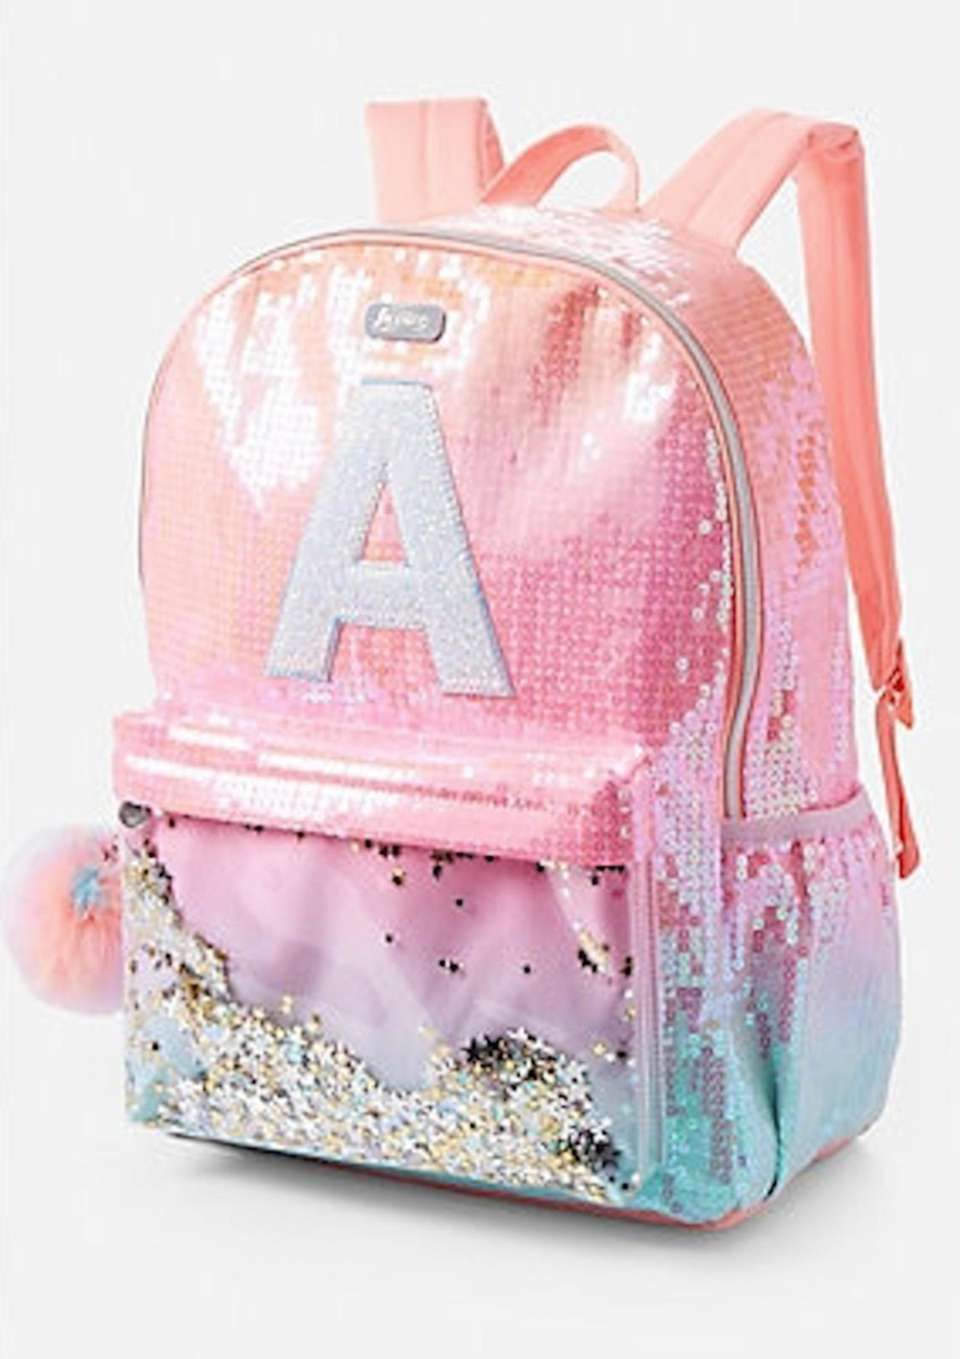 This backpack combines ombre color, sequins and glitter